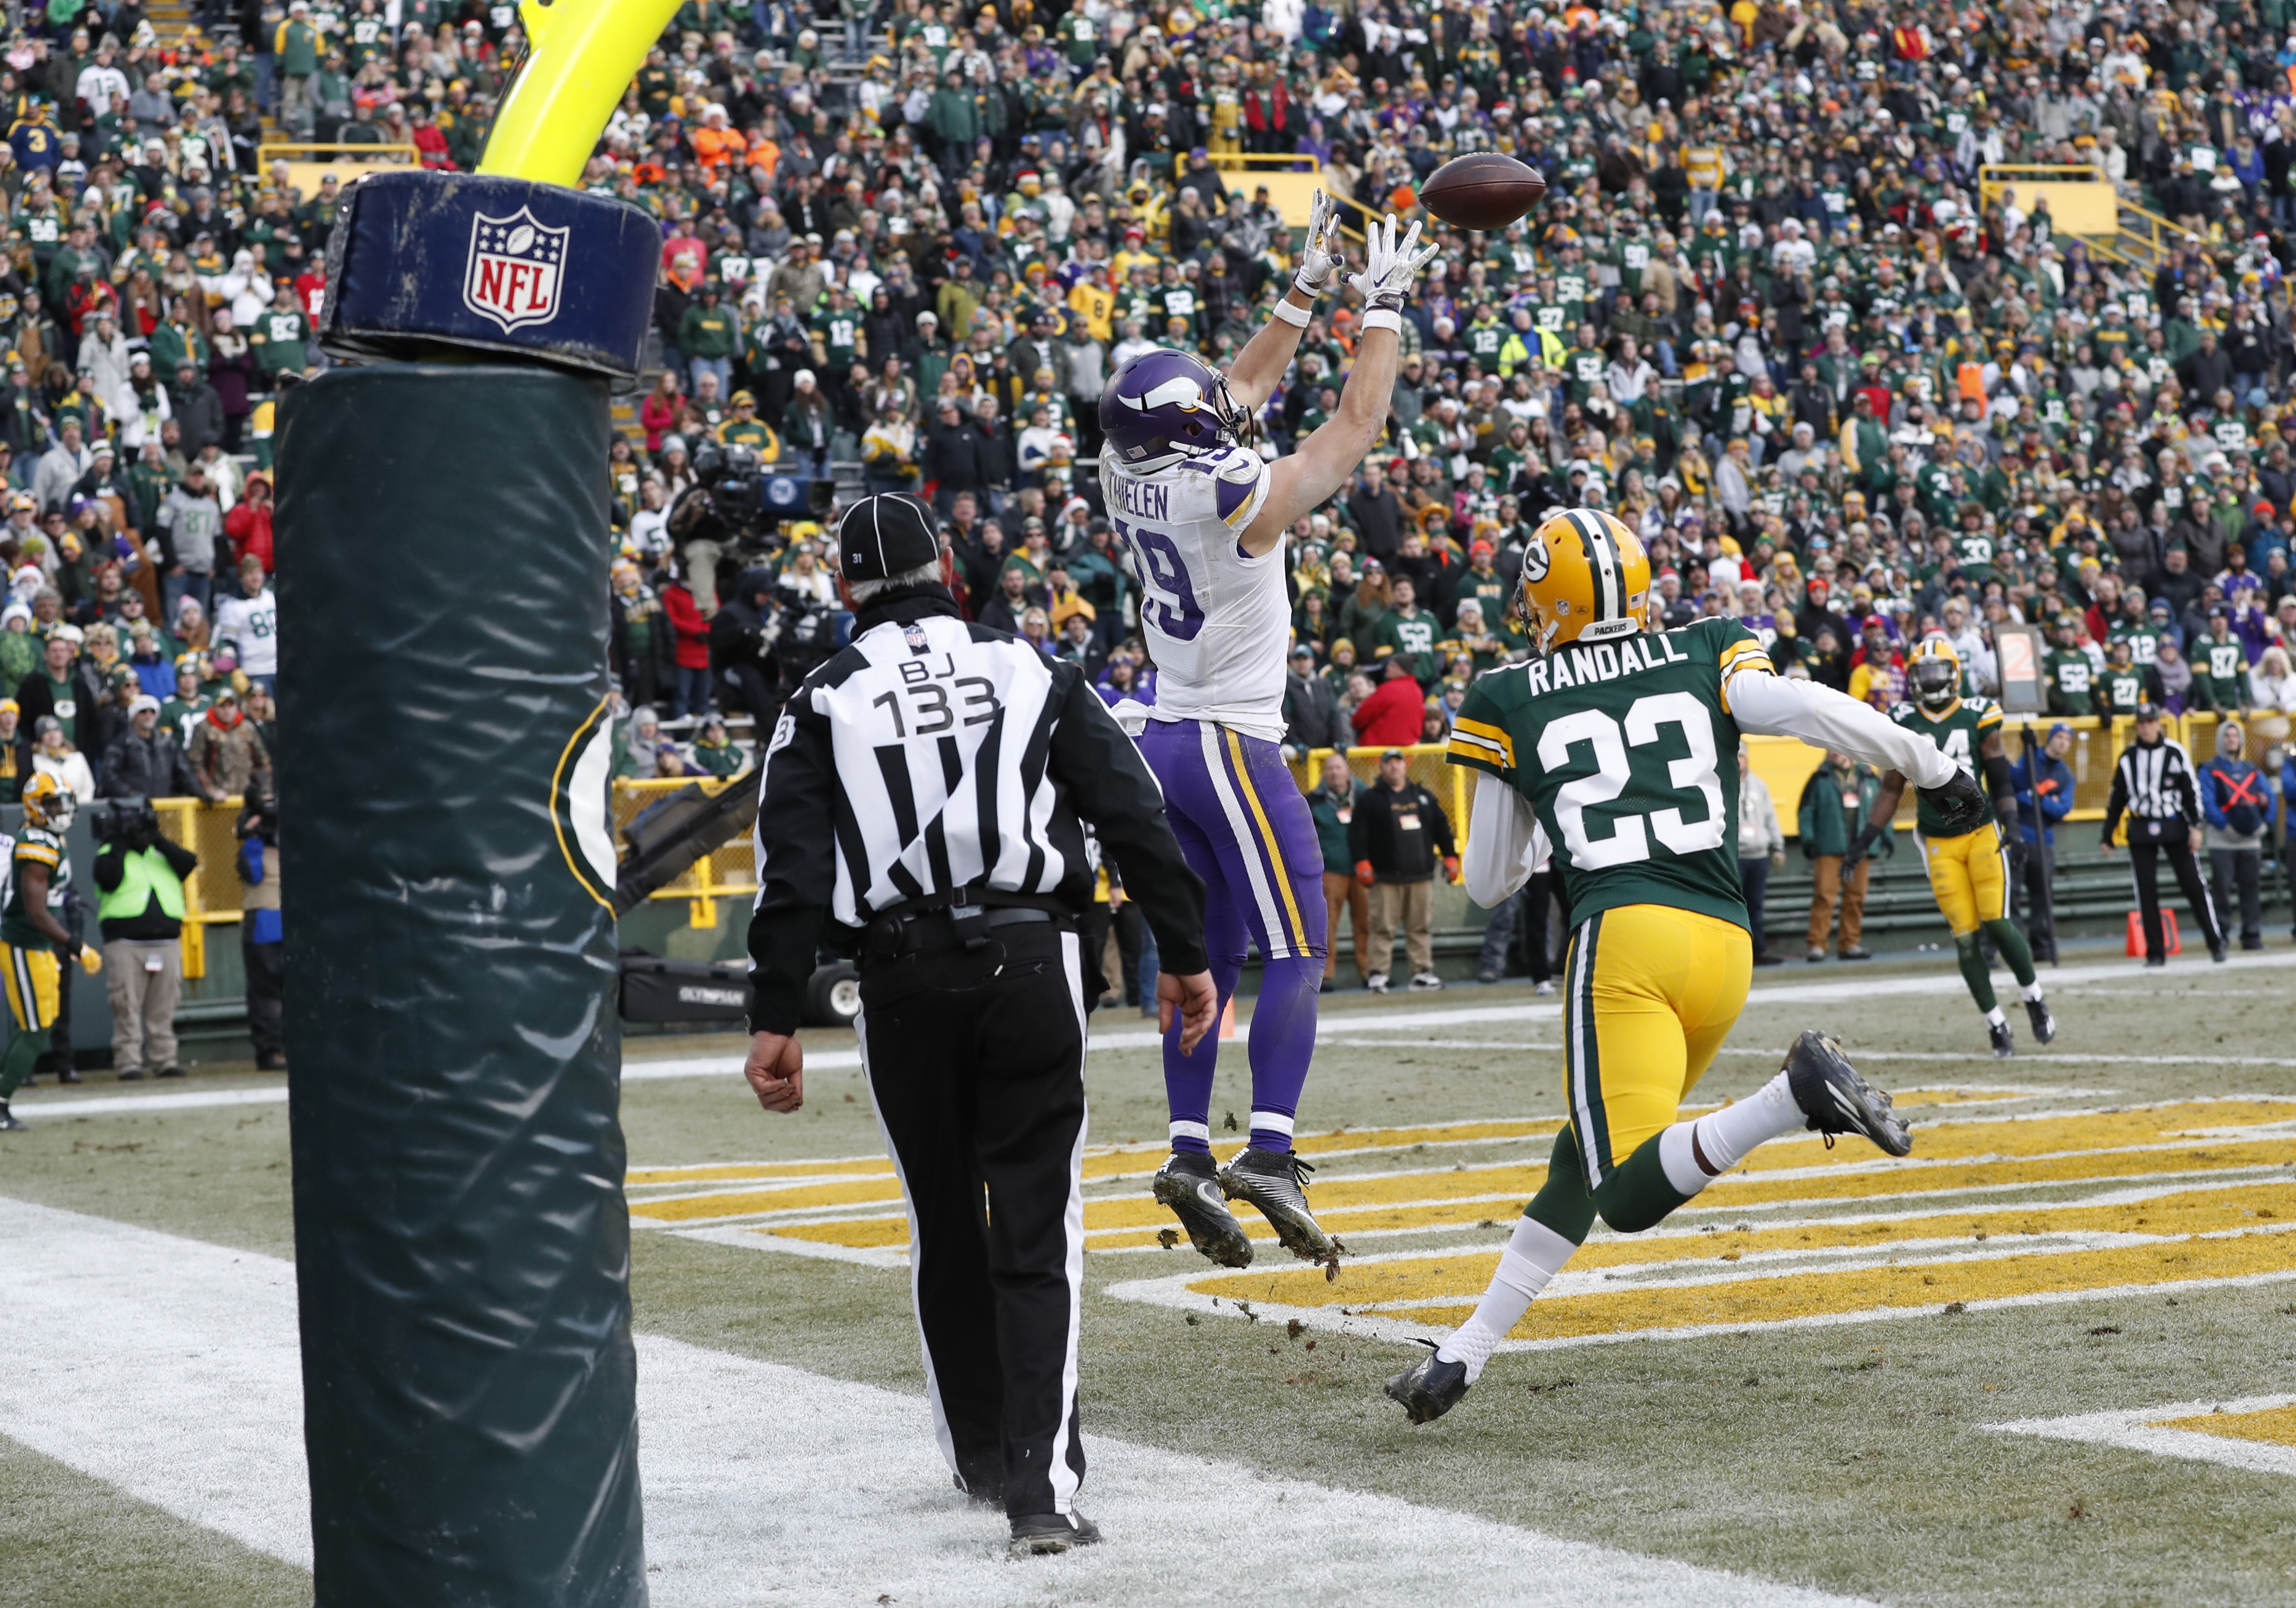 Minnesota Vikings' Adam Thielen catches a touchdown pass in front of Green Bay Packers' Damarious Randall (23) during the second half of an NFL football game Saturday, Dec. 24, 2016, in Green Bay, Wis. The Packers won 38-25. (AP Photo/Matt Ludtke)